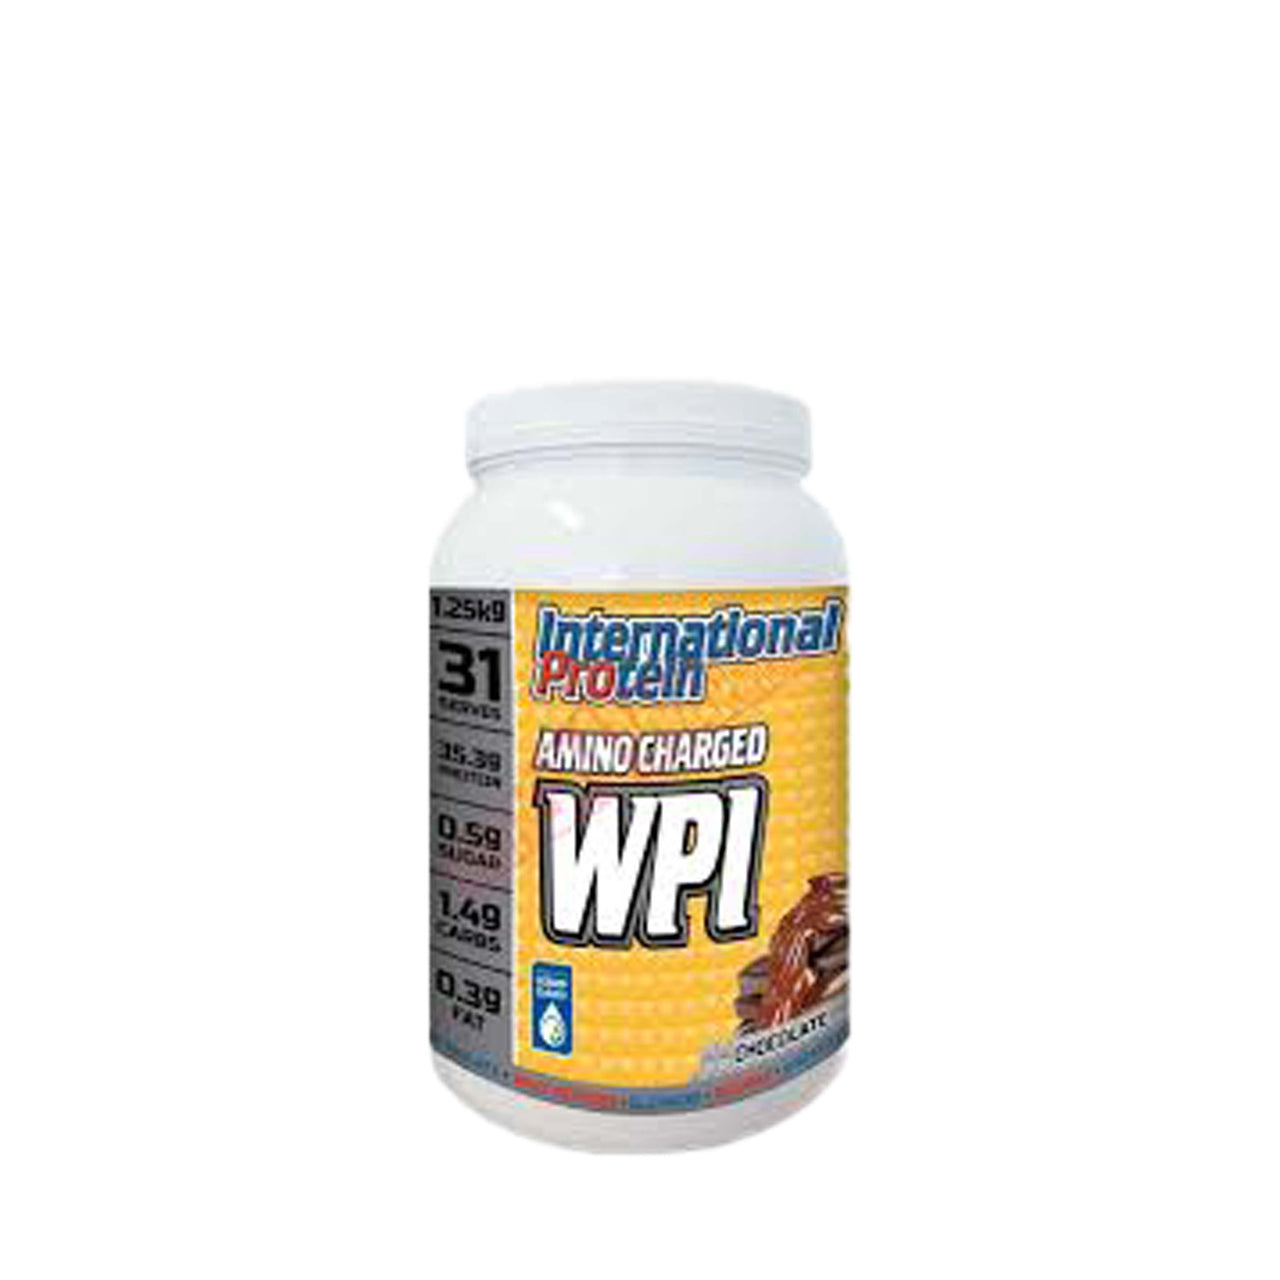 International Protein Amino Charged WPI 1.25KG, International Protein - Nutrition Co Australia